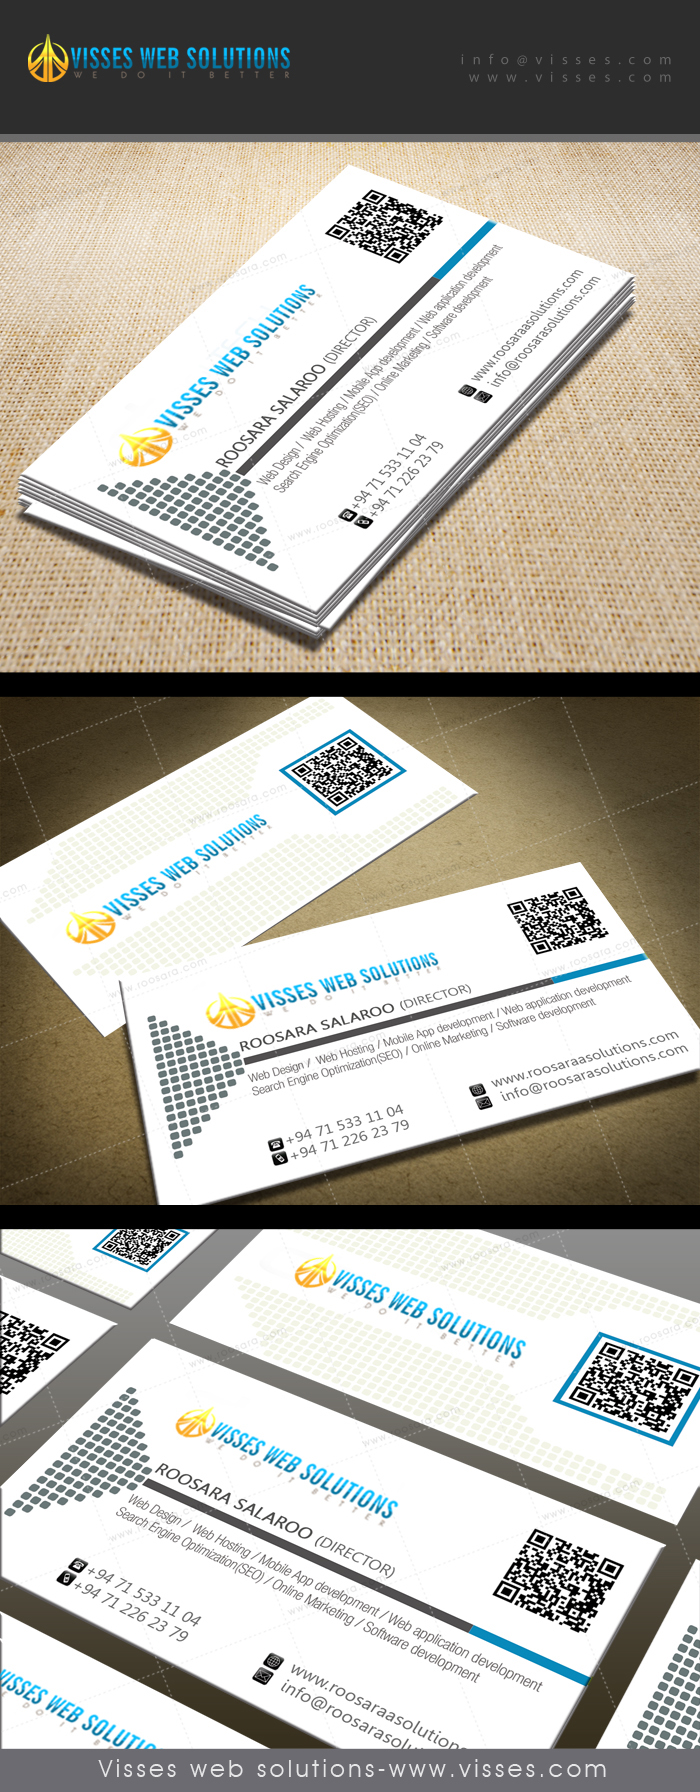 21_Business_Card2-1